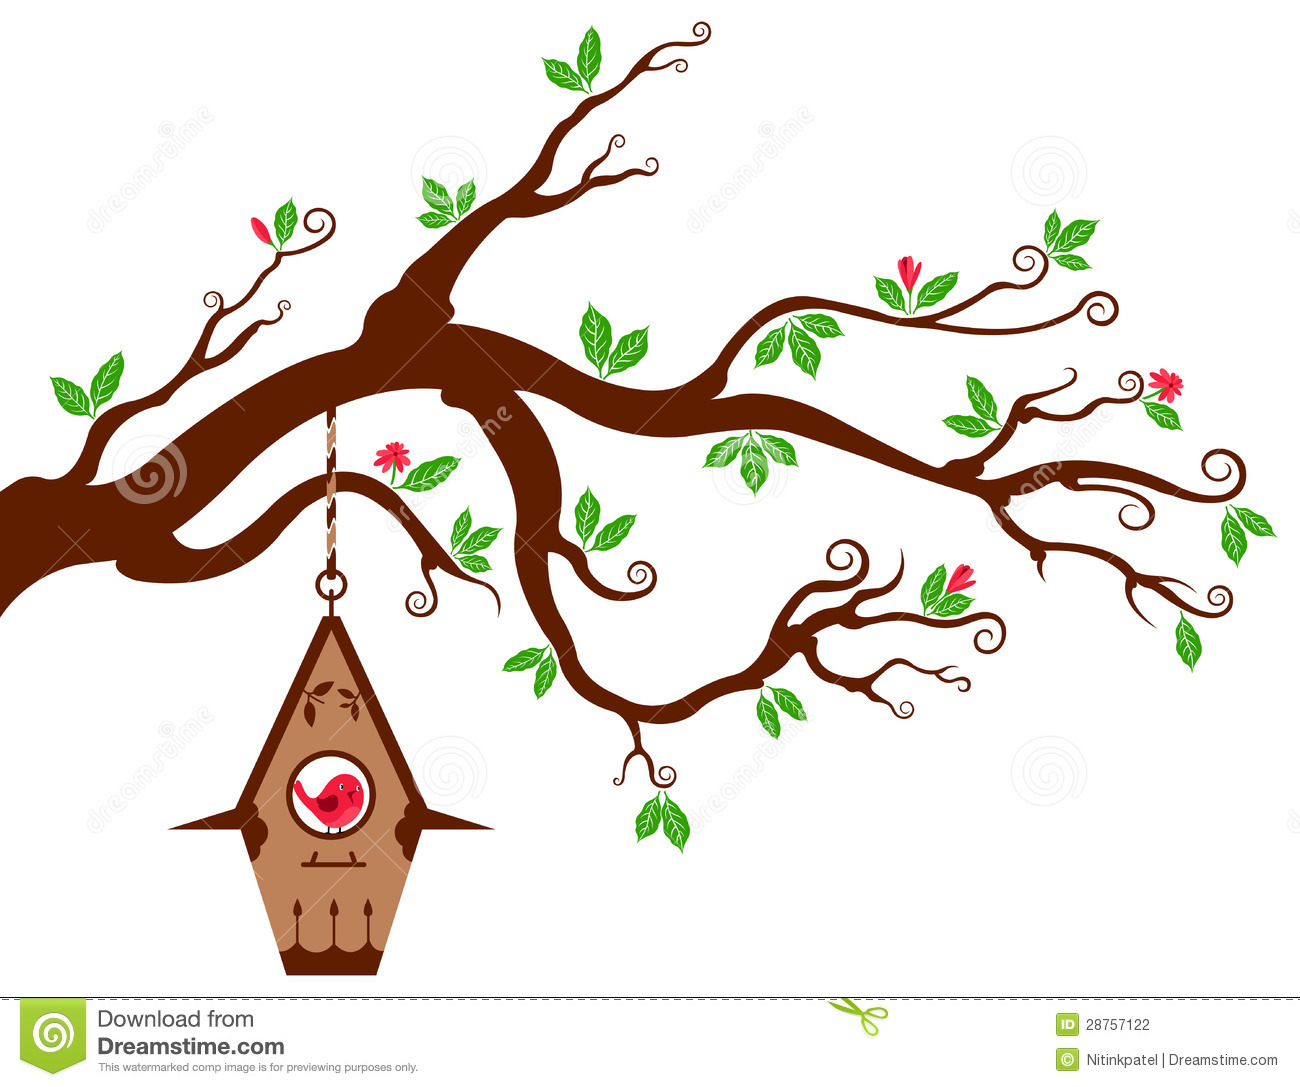 1000 Images About Tree For My Shoulder Tattoo Idea On